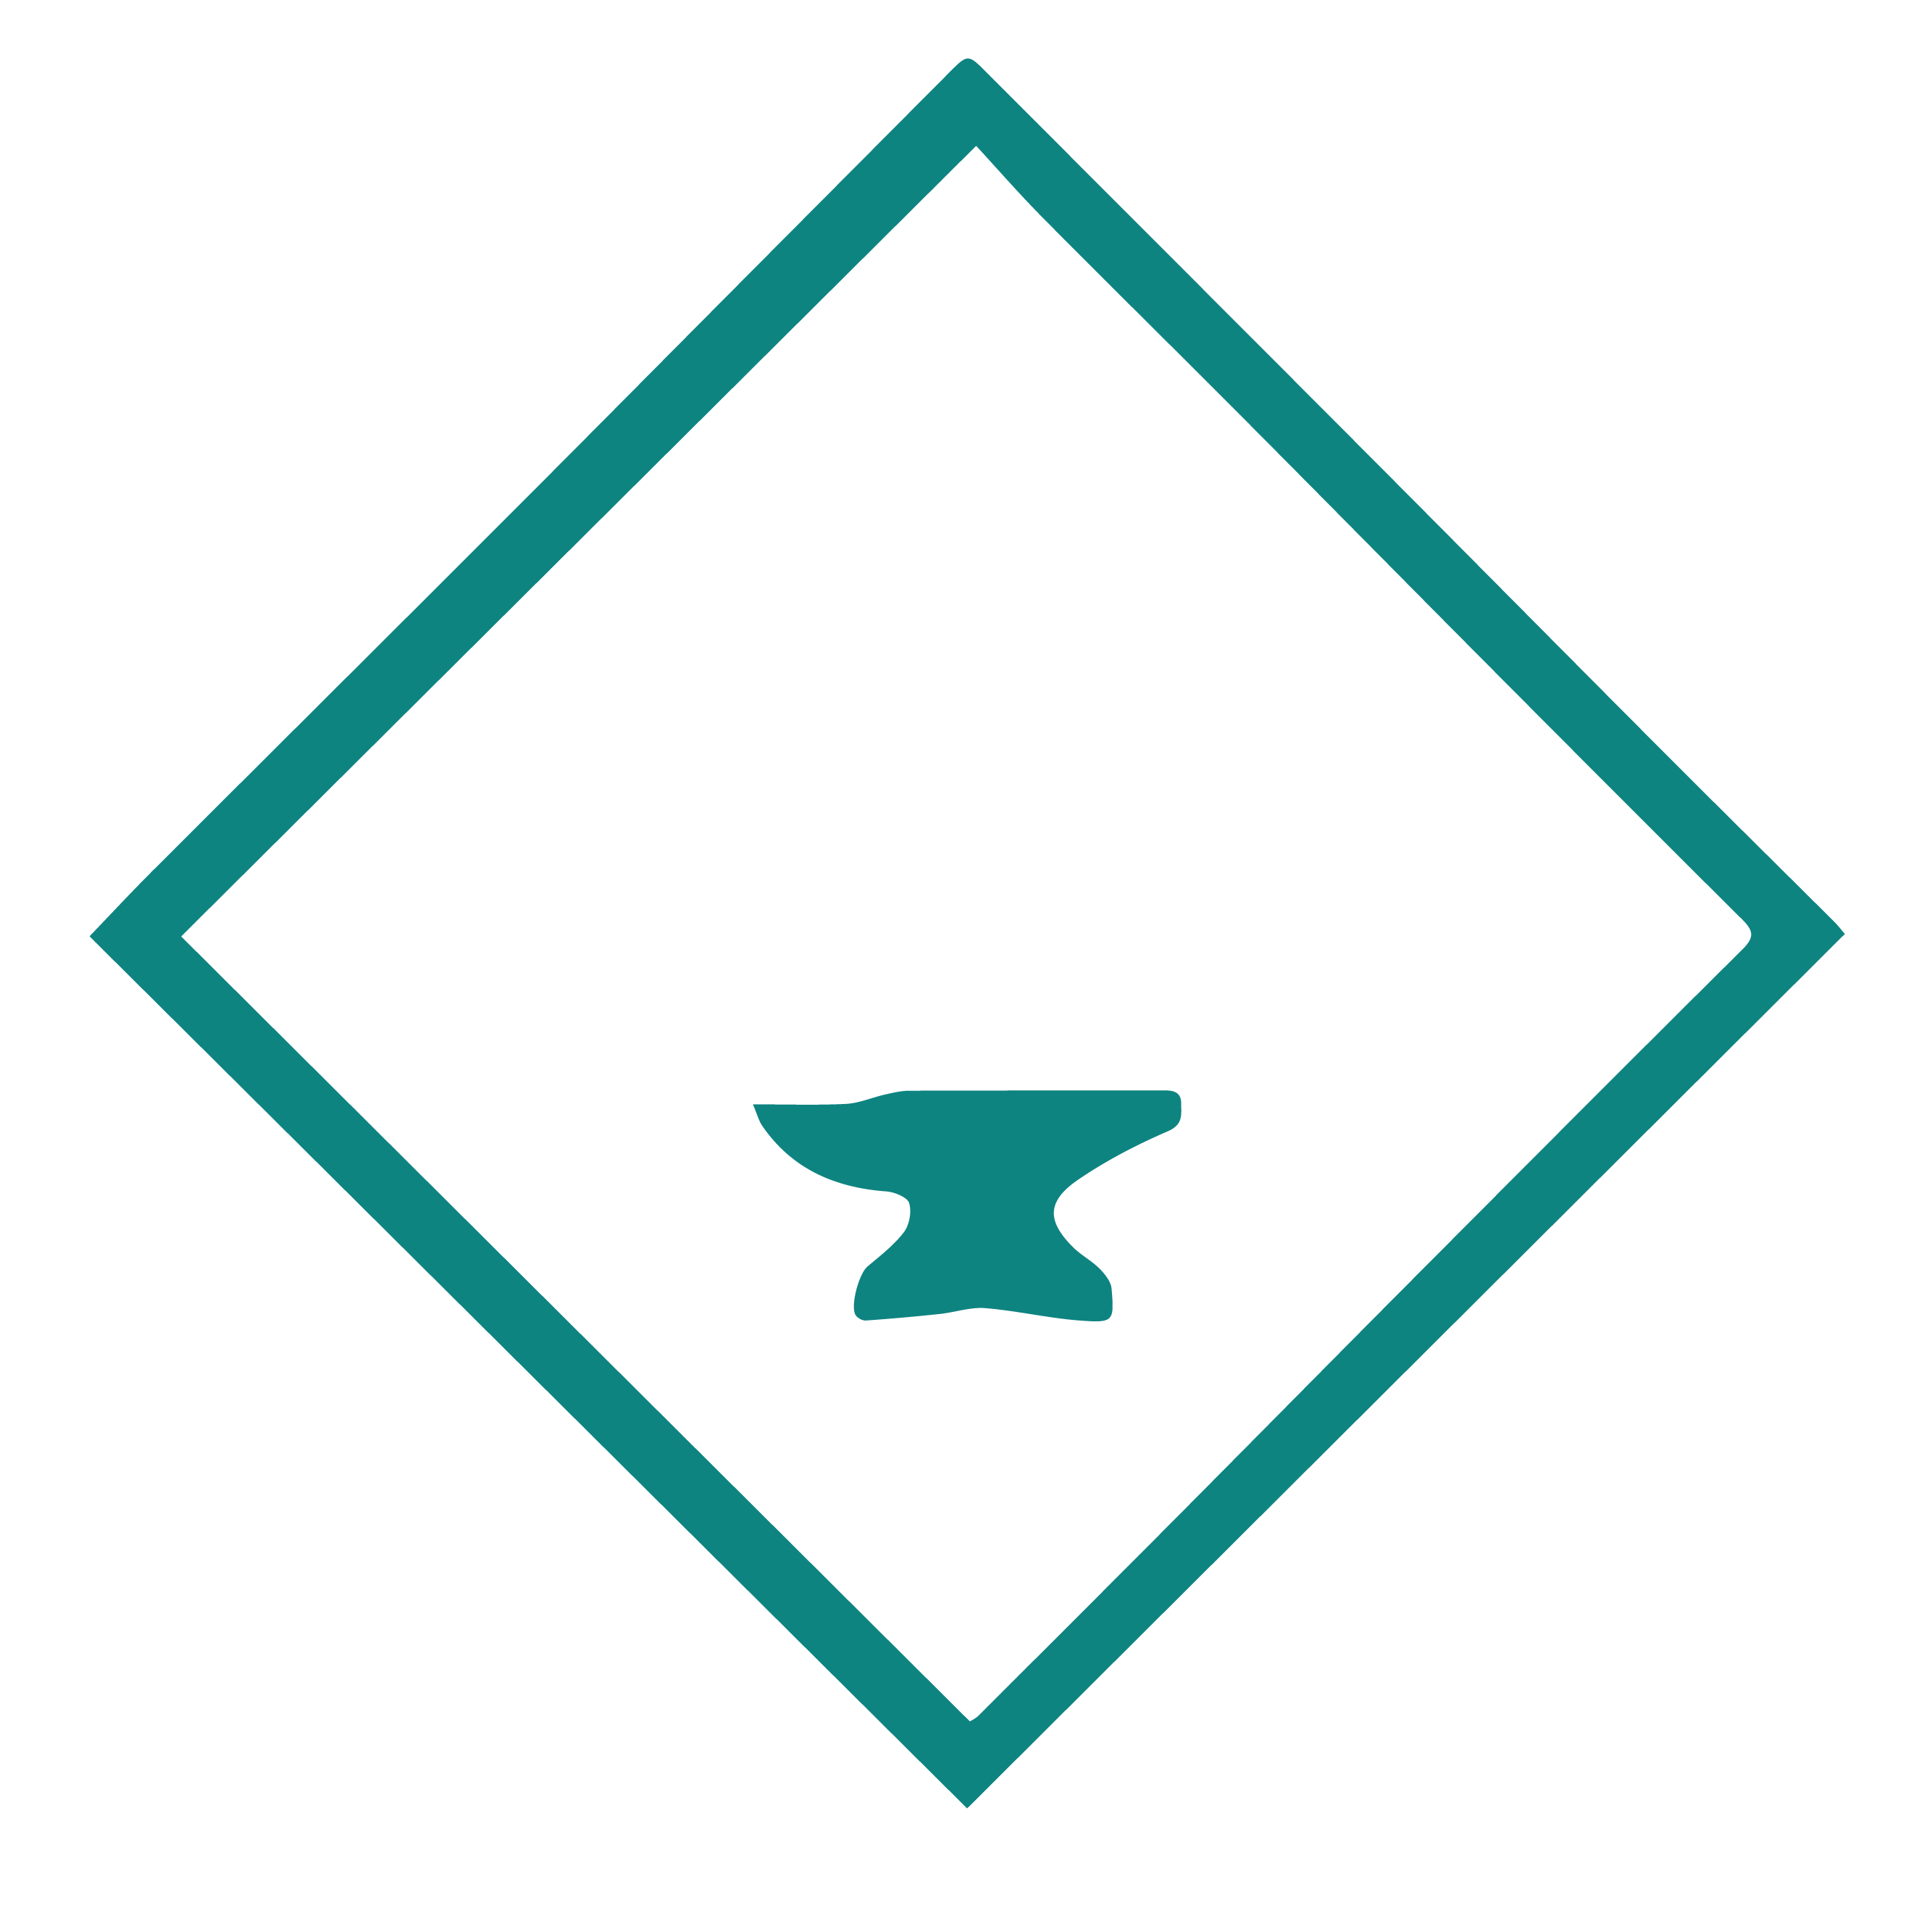 Crossfit Faber